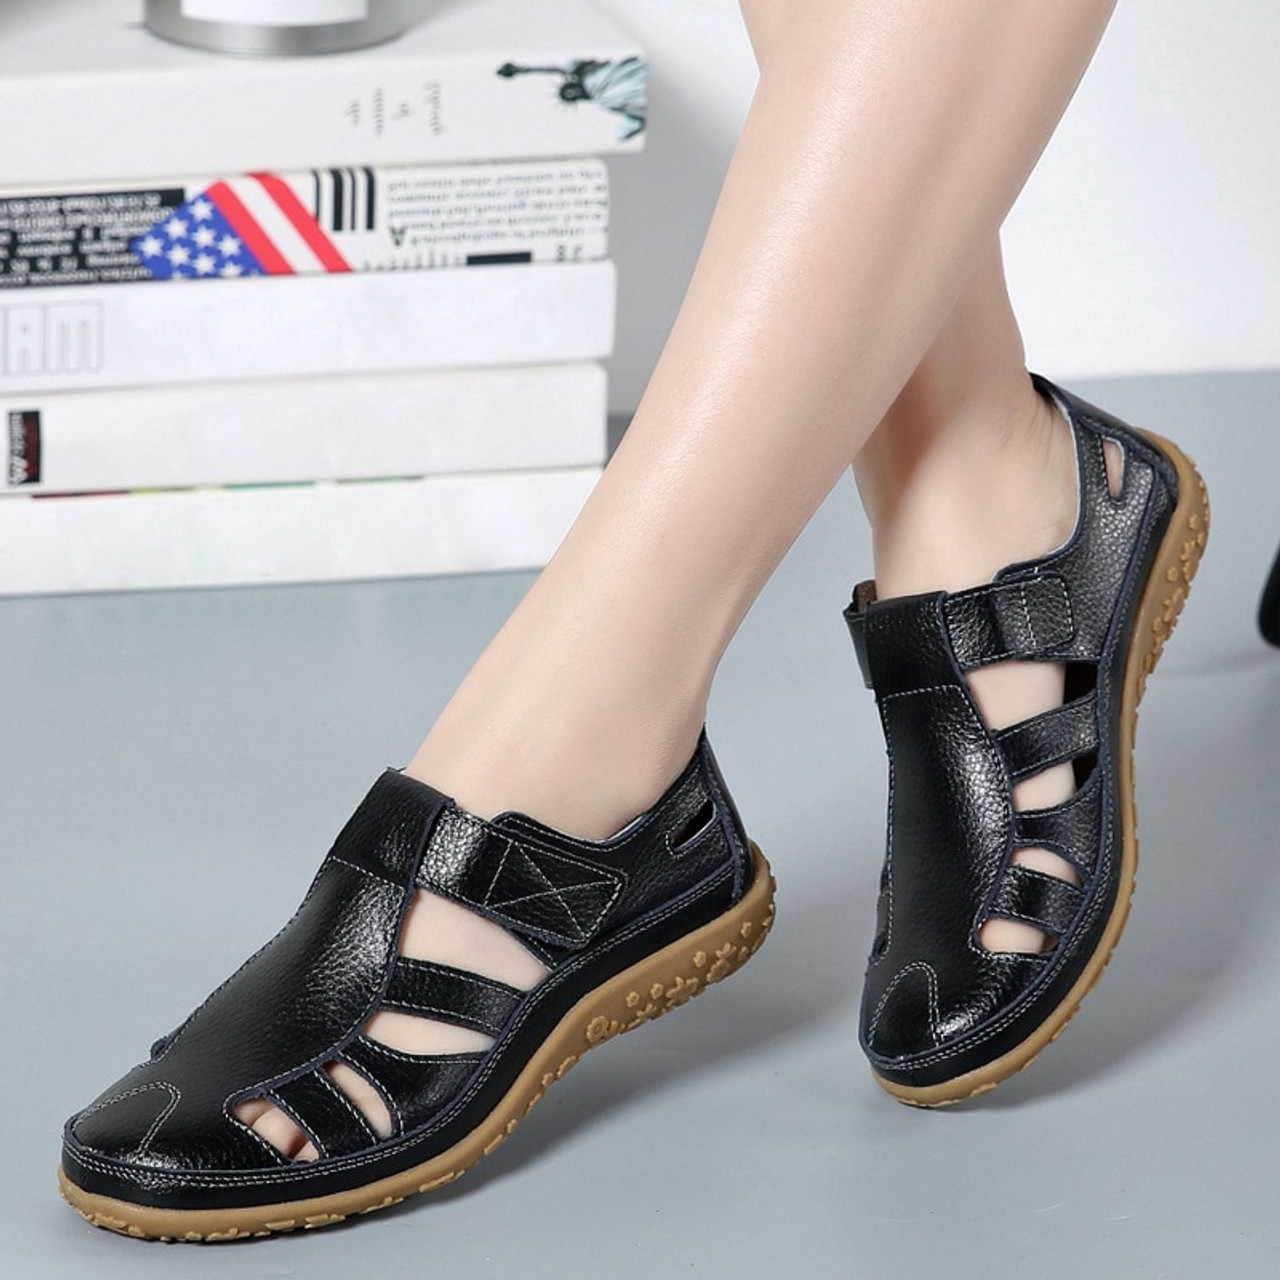 dobeyping Hollow Woman Shoes Genuine